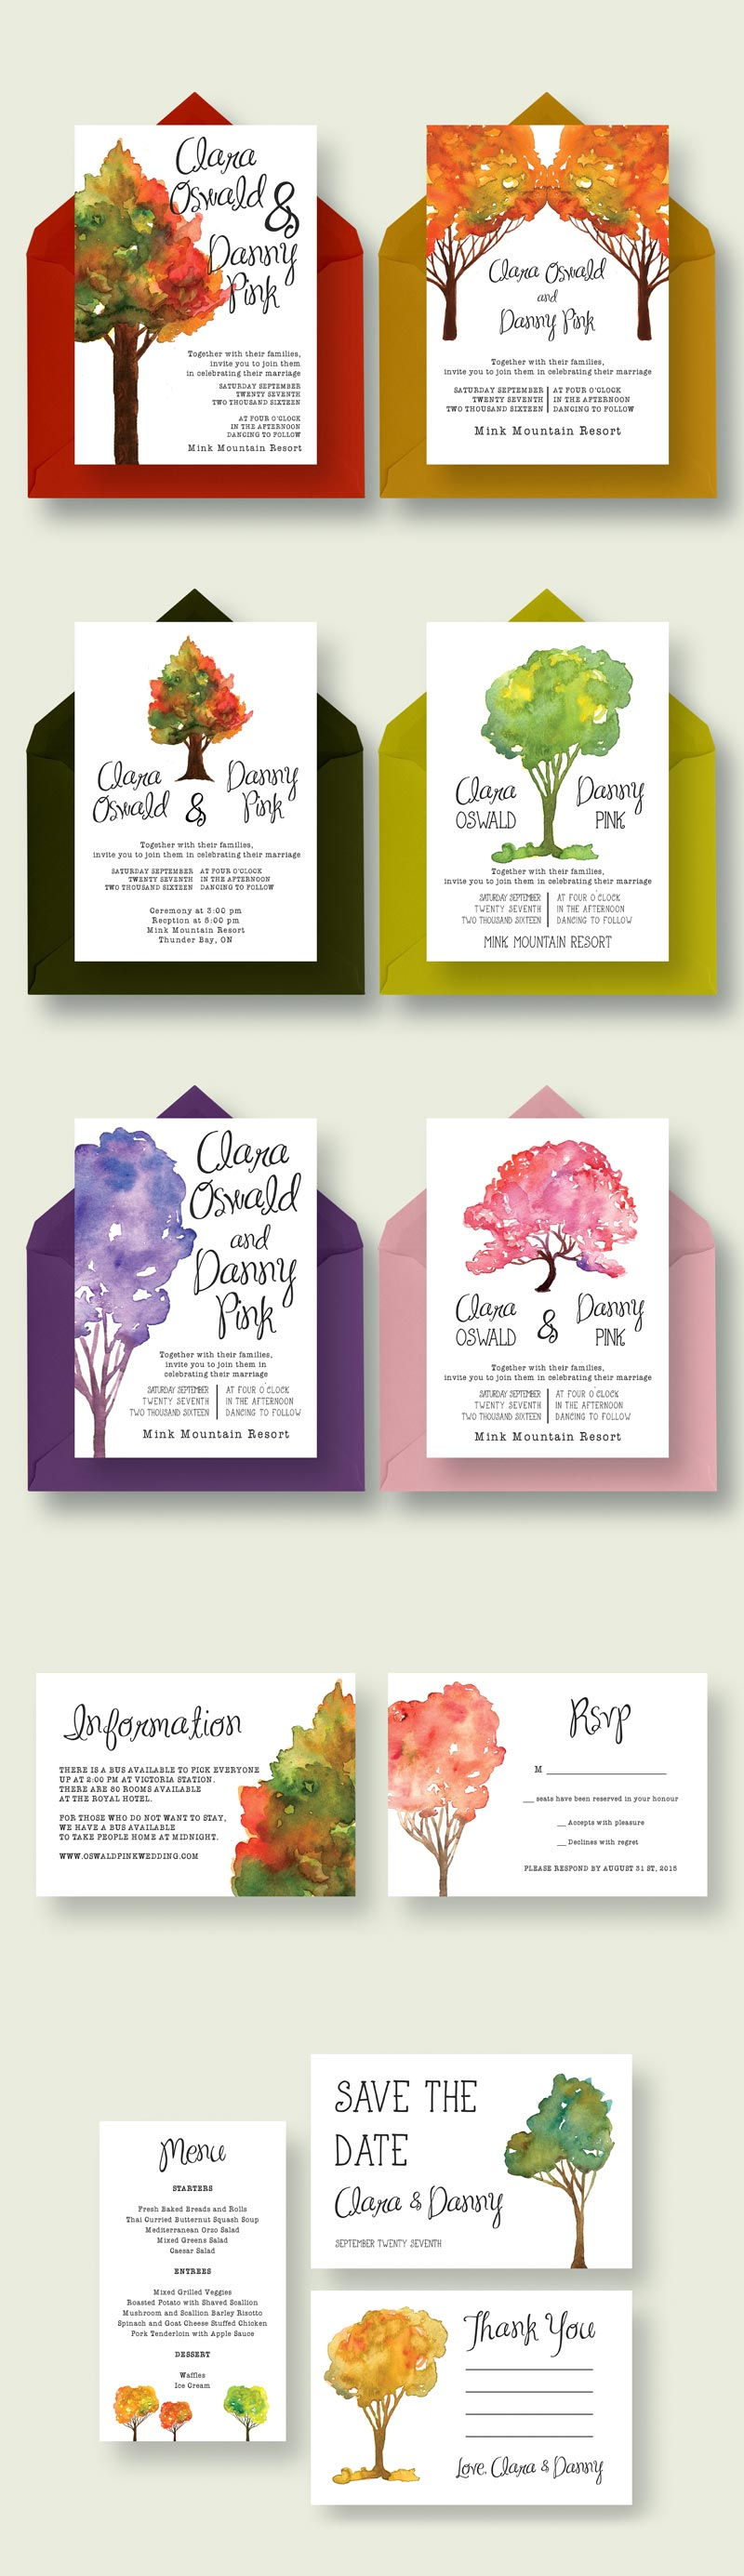 Watercolour Tree Wedding Suite 2.0